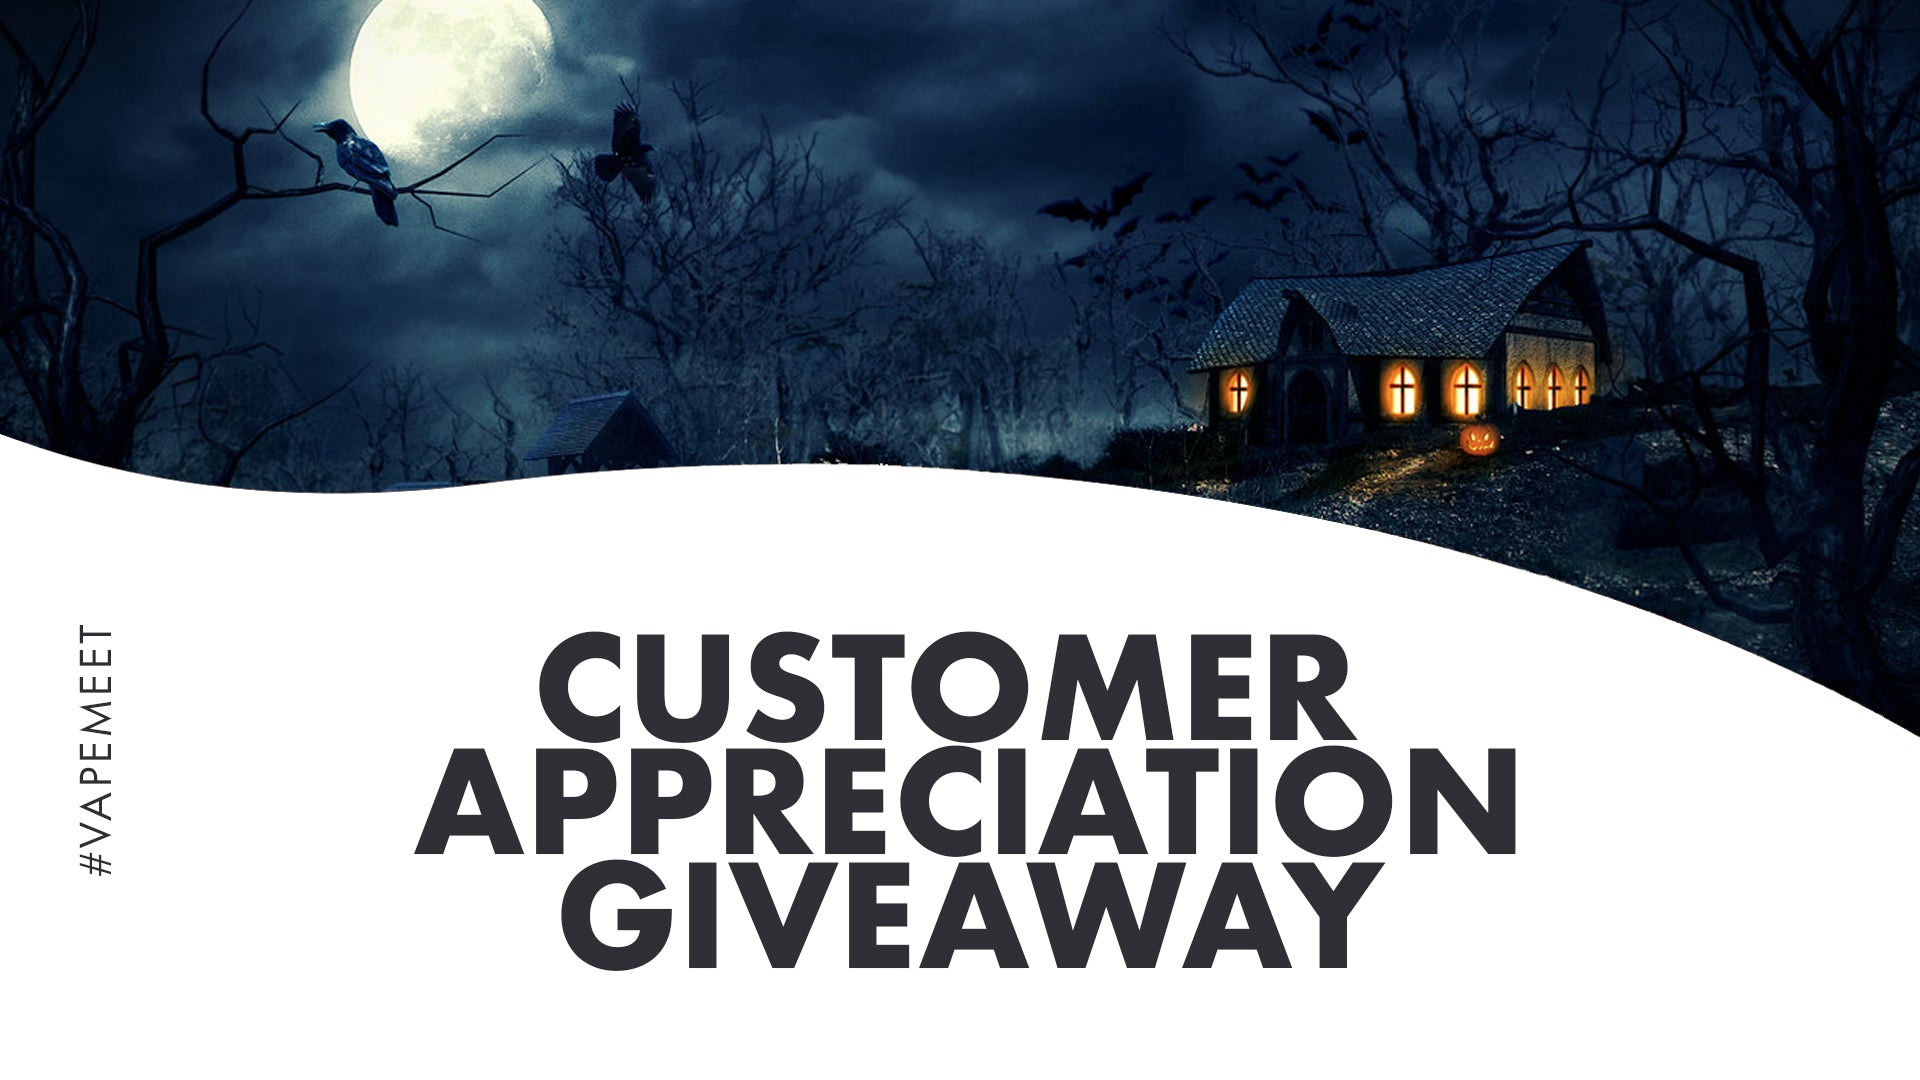 Customer Appreciation Giveaway